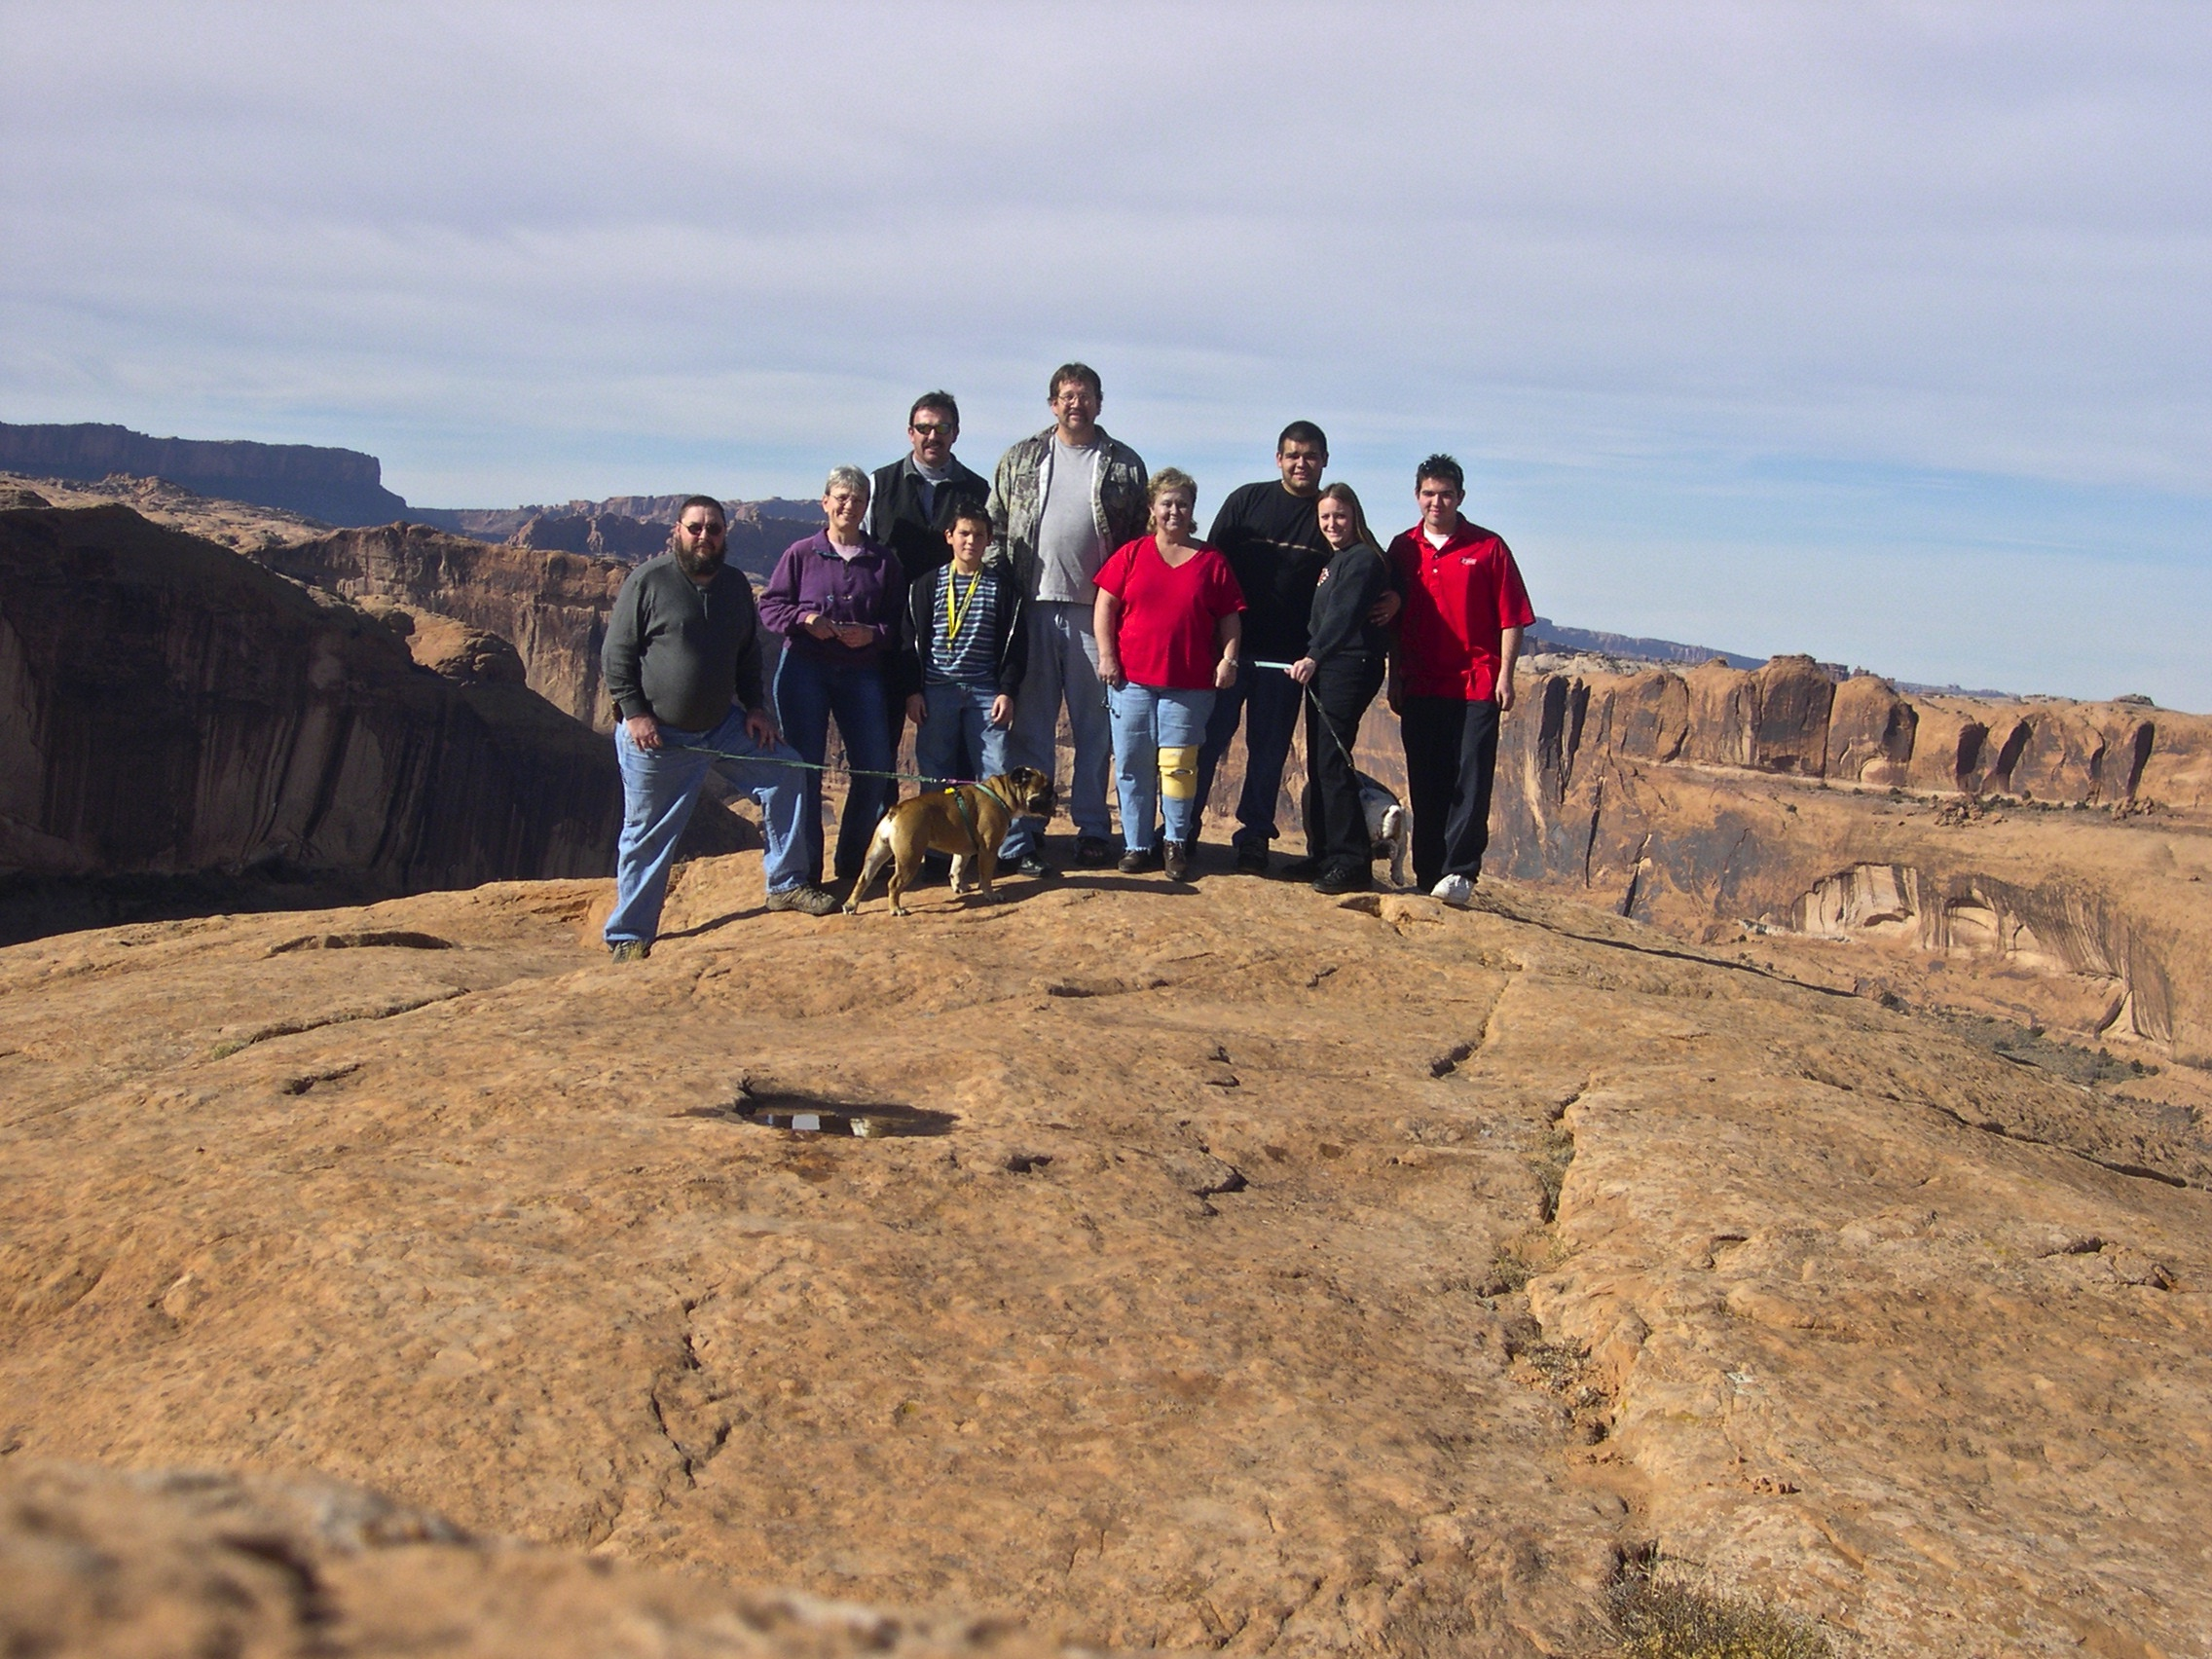 Conk family and friends on trail in Moab, Utah, USA